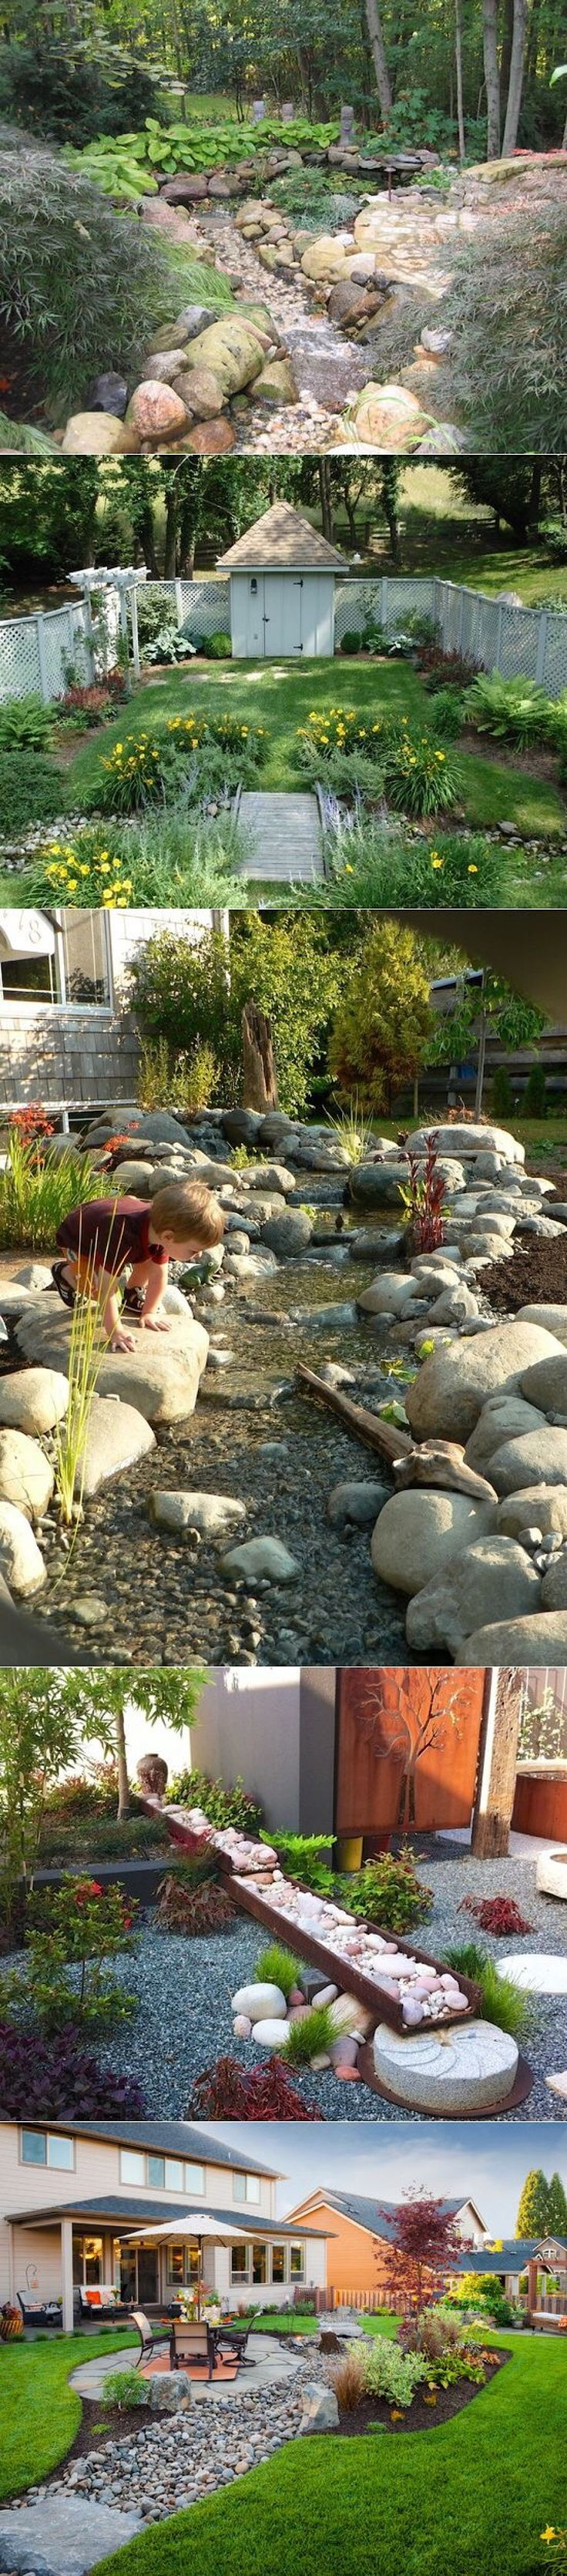 Dry Creek Beds and Garden Feature ClipStitch